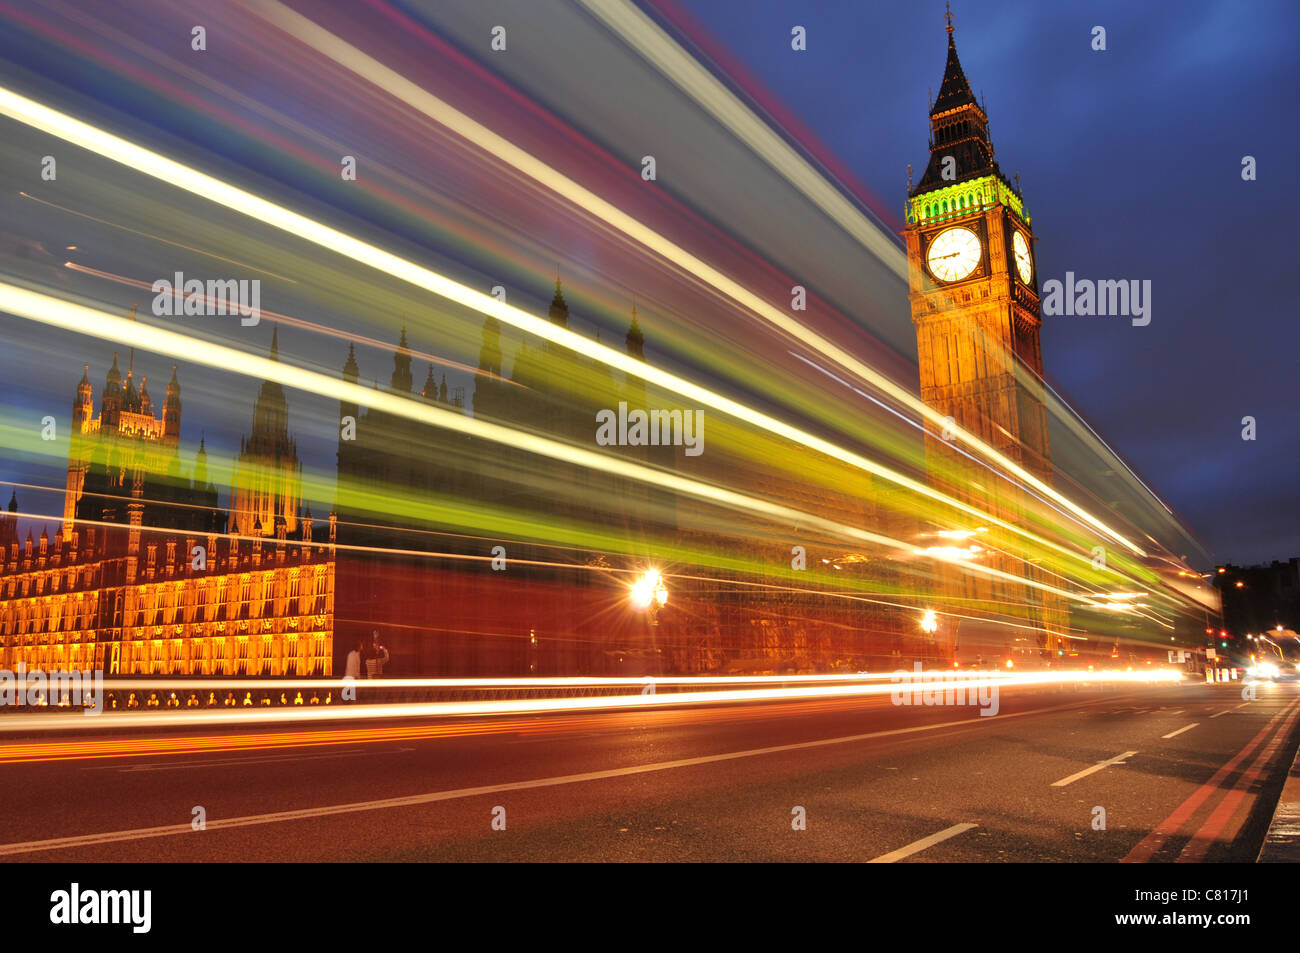 London bei Nacht Stockfoto